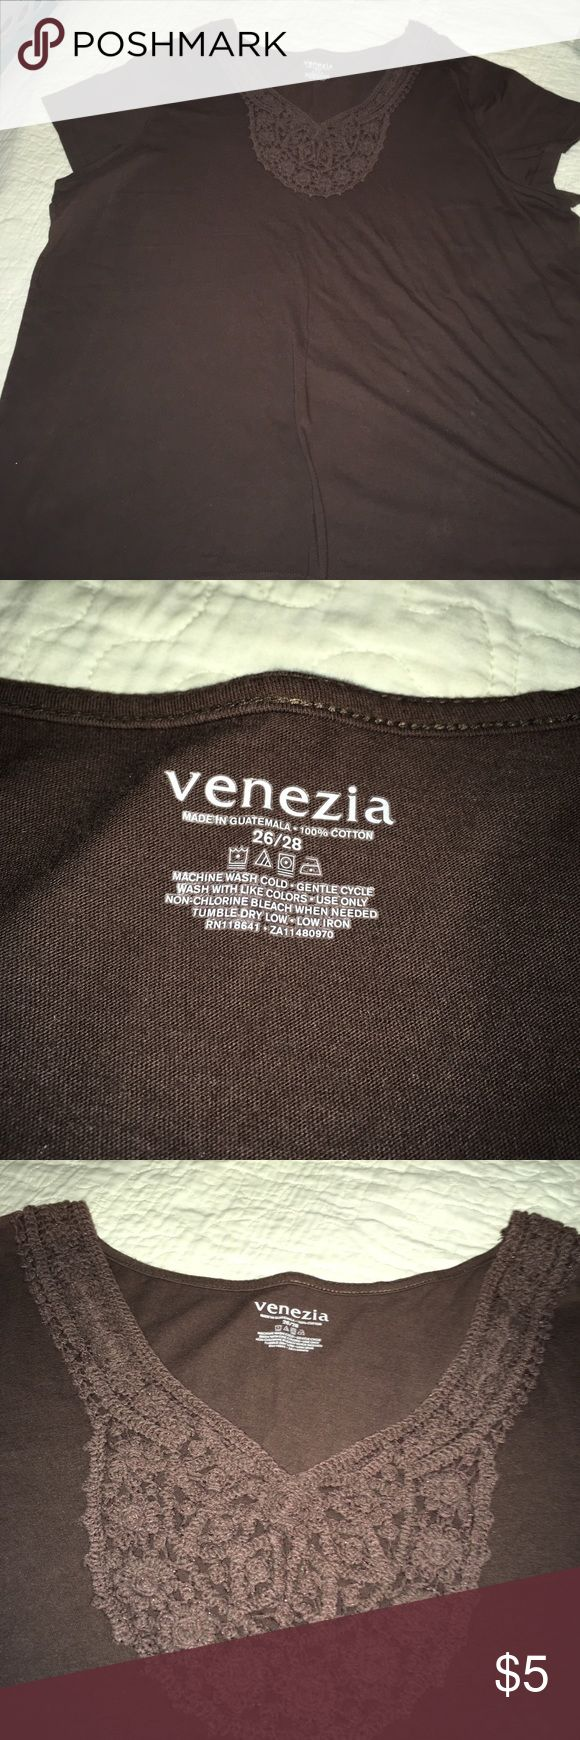 Decorative T shirt Size 26/28 Brown gently used. Venezia Tops Tees - Short Sleeve